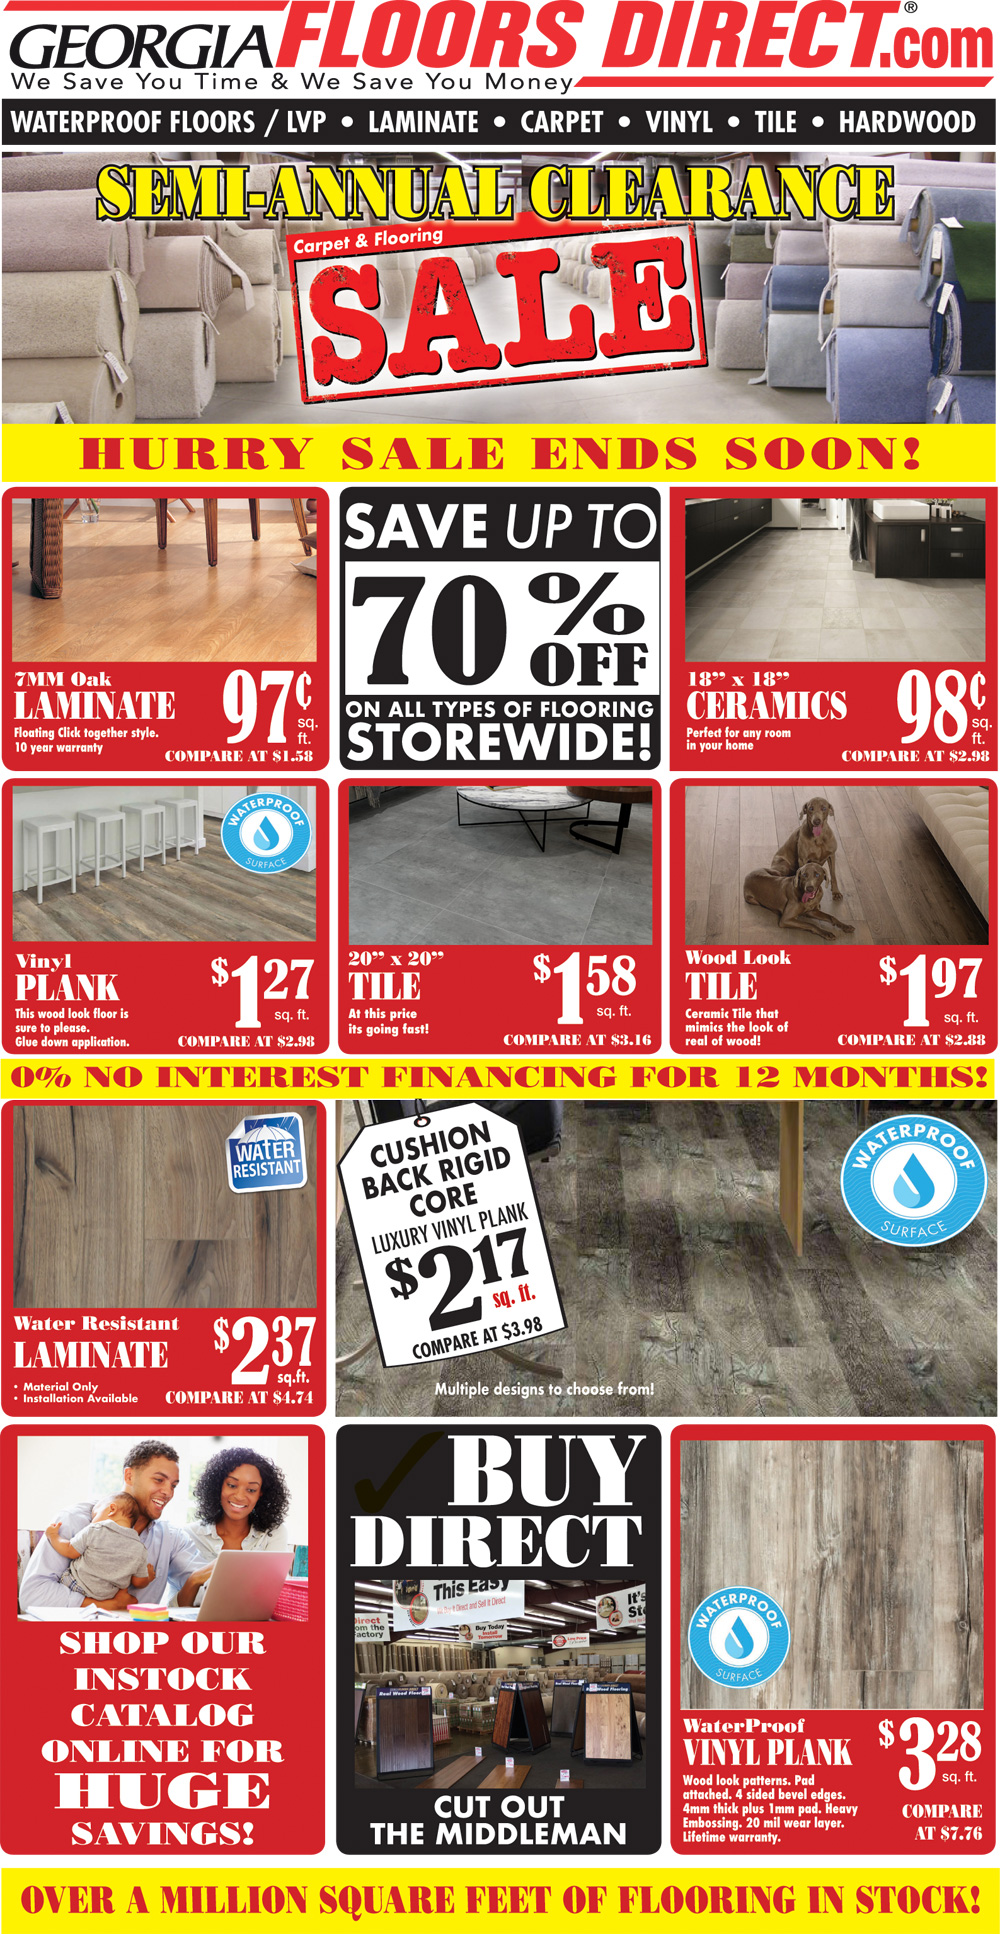 Specials at our Tallahassee store